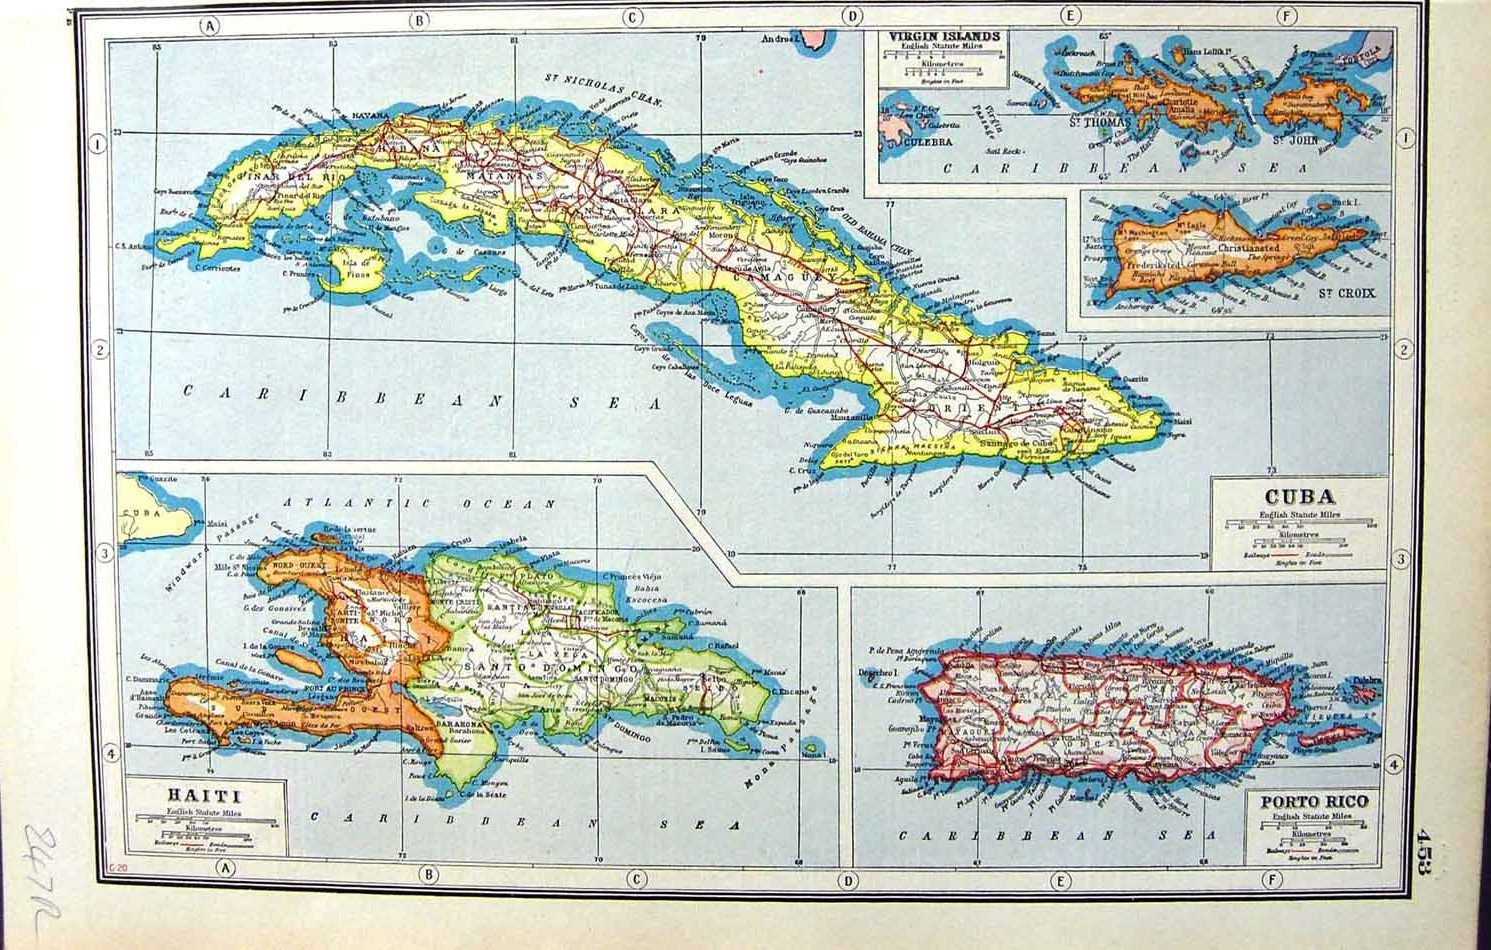 Pin by vintage virgin islands sharing virgin islands history on antique maps vintage maps west indies virgin islands the virgin islands old maps us virgin islands vintage cards sciox Image collections